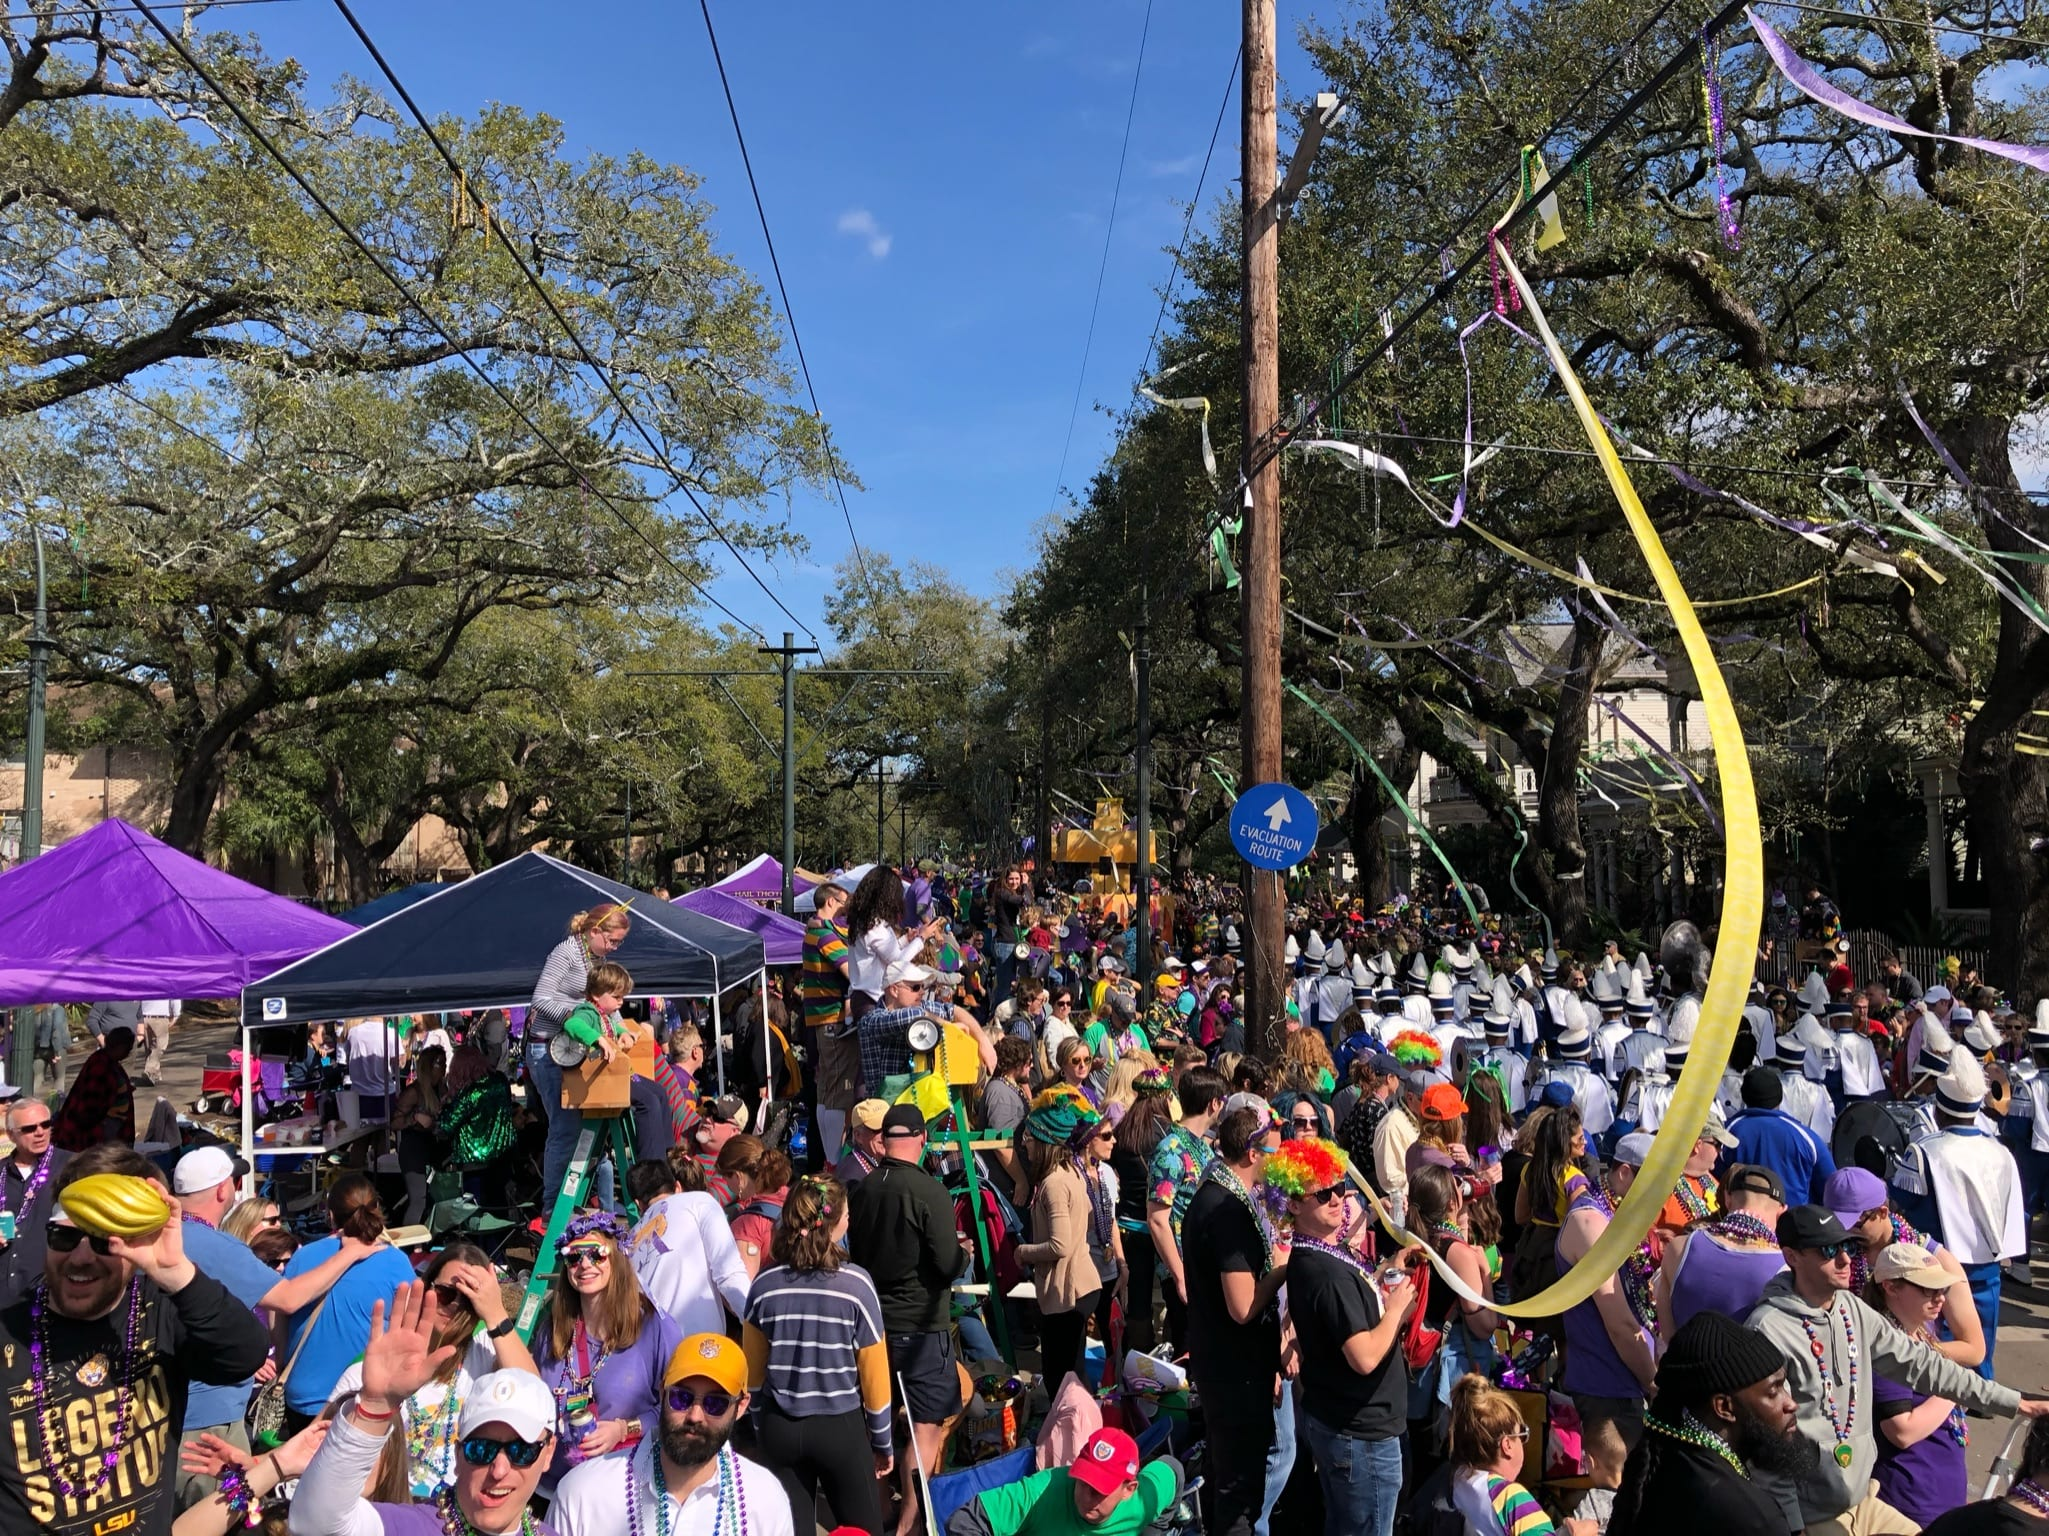 crowd of people on St. Charles during Mardi Gras